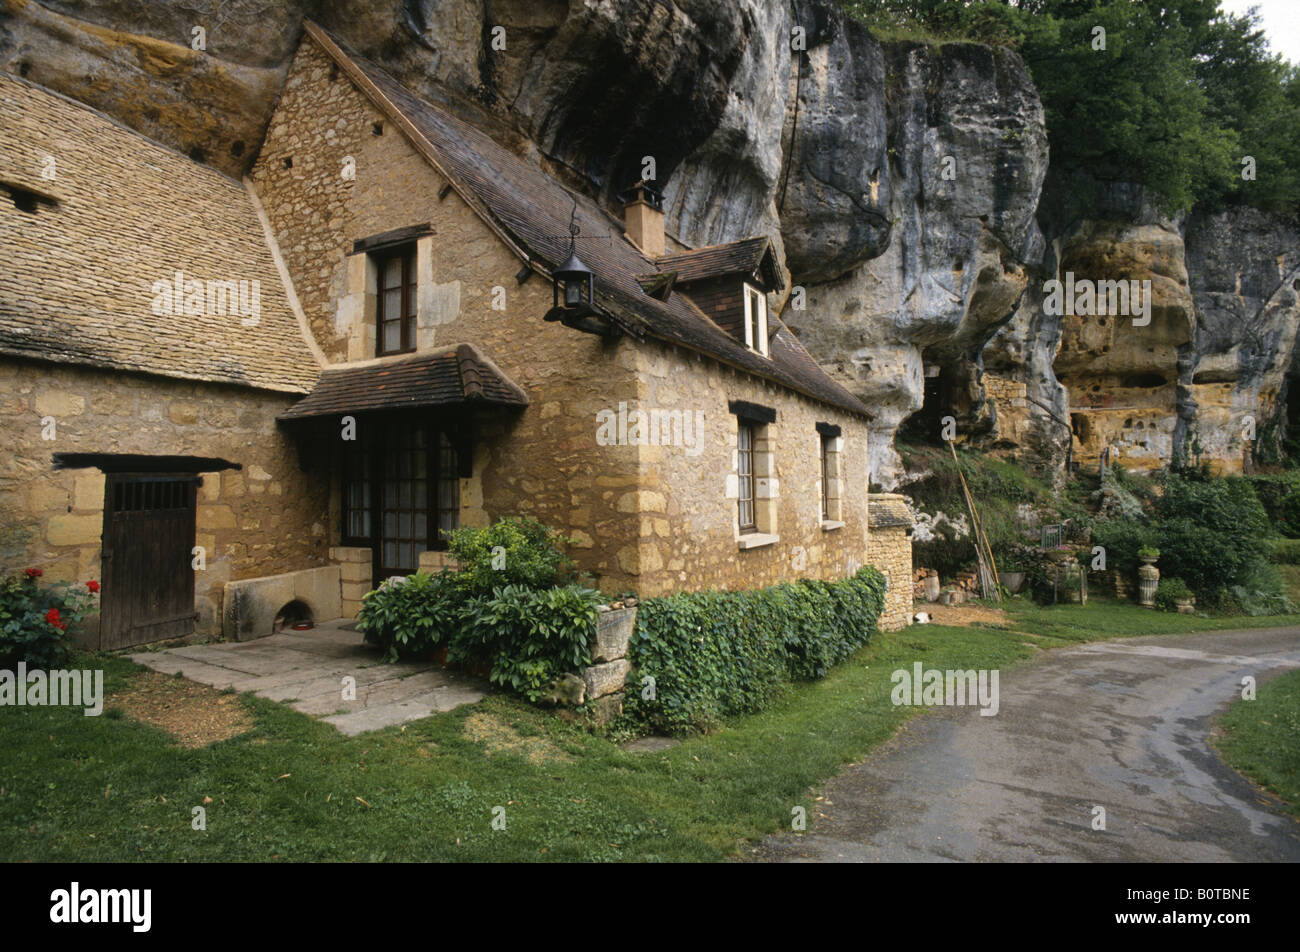 cave house built into a cliff in the town of st cirq france stock photo 17746442 alamy. Black Bedroom Furniture Sets. Home Design Ideas